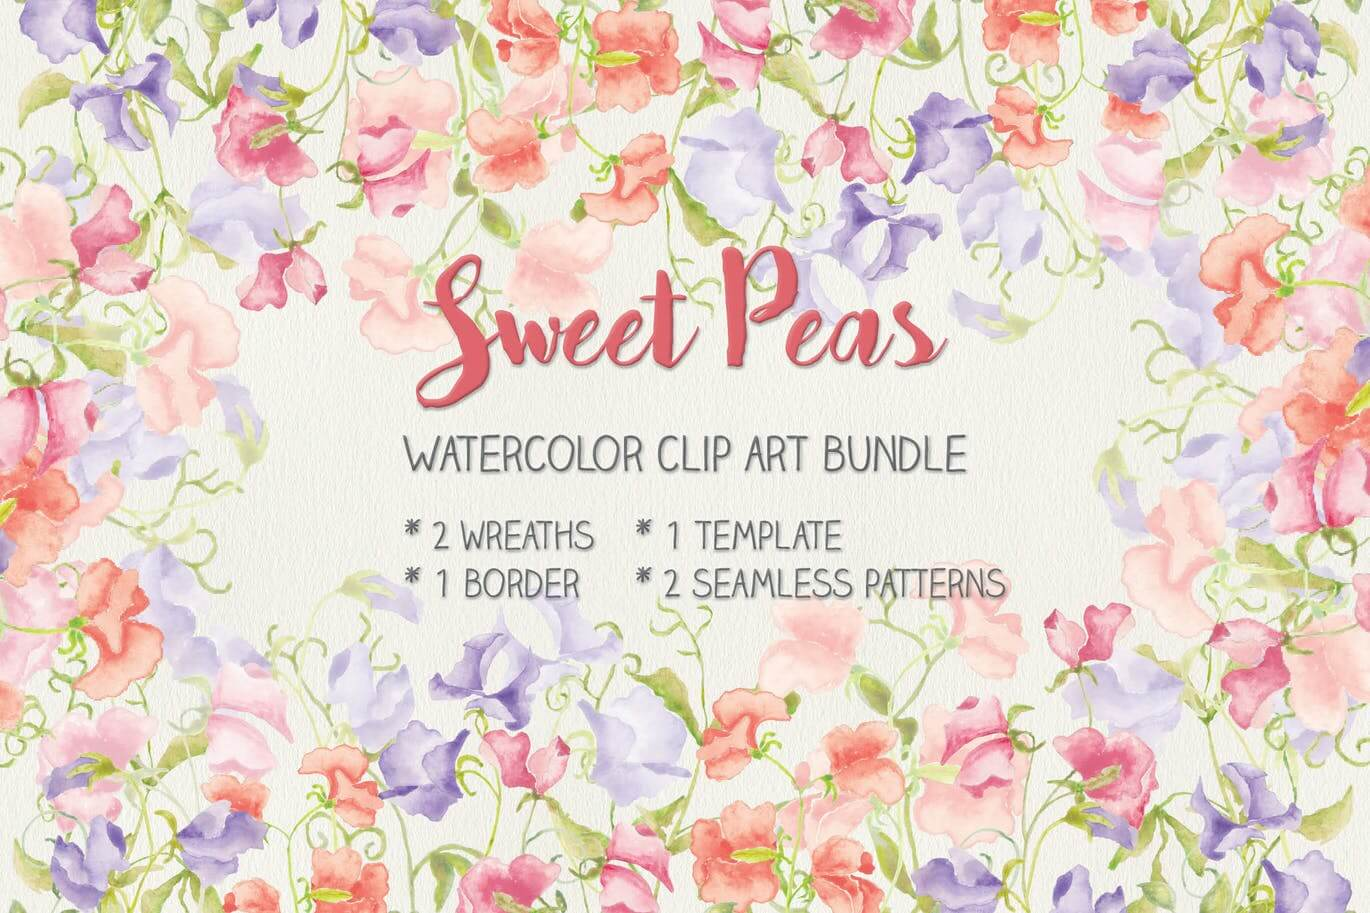 Sweet Peas Clip Art and Patterns in Watercolor